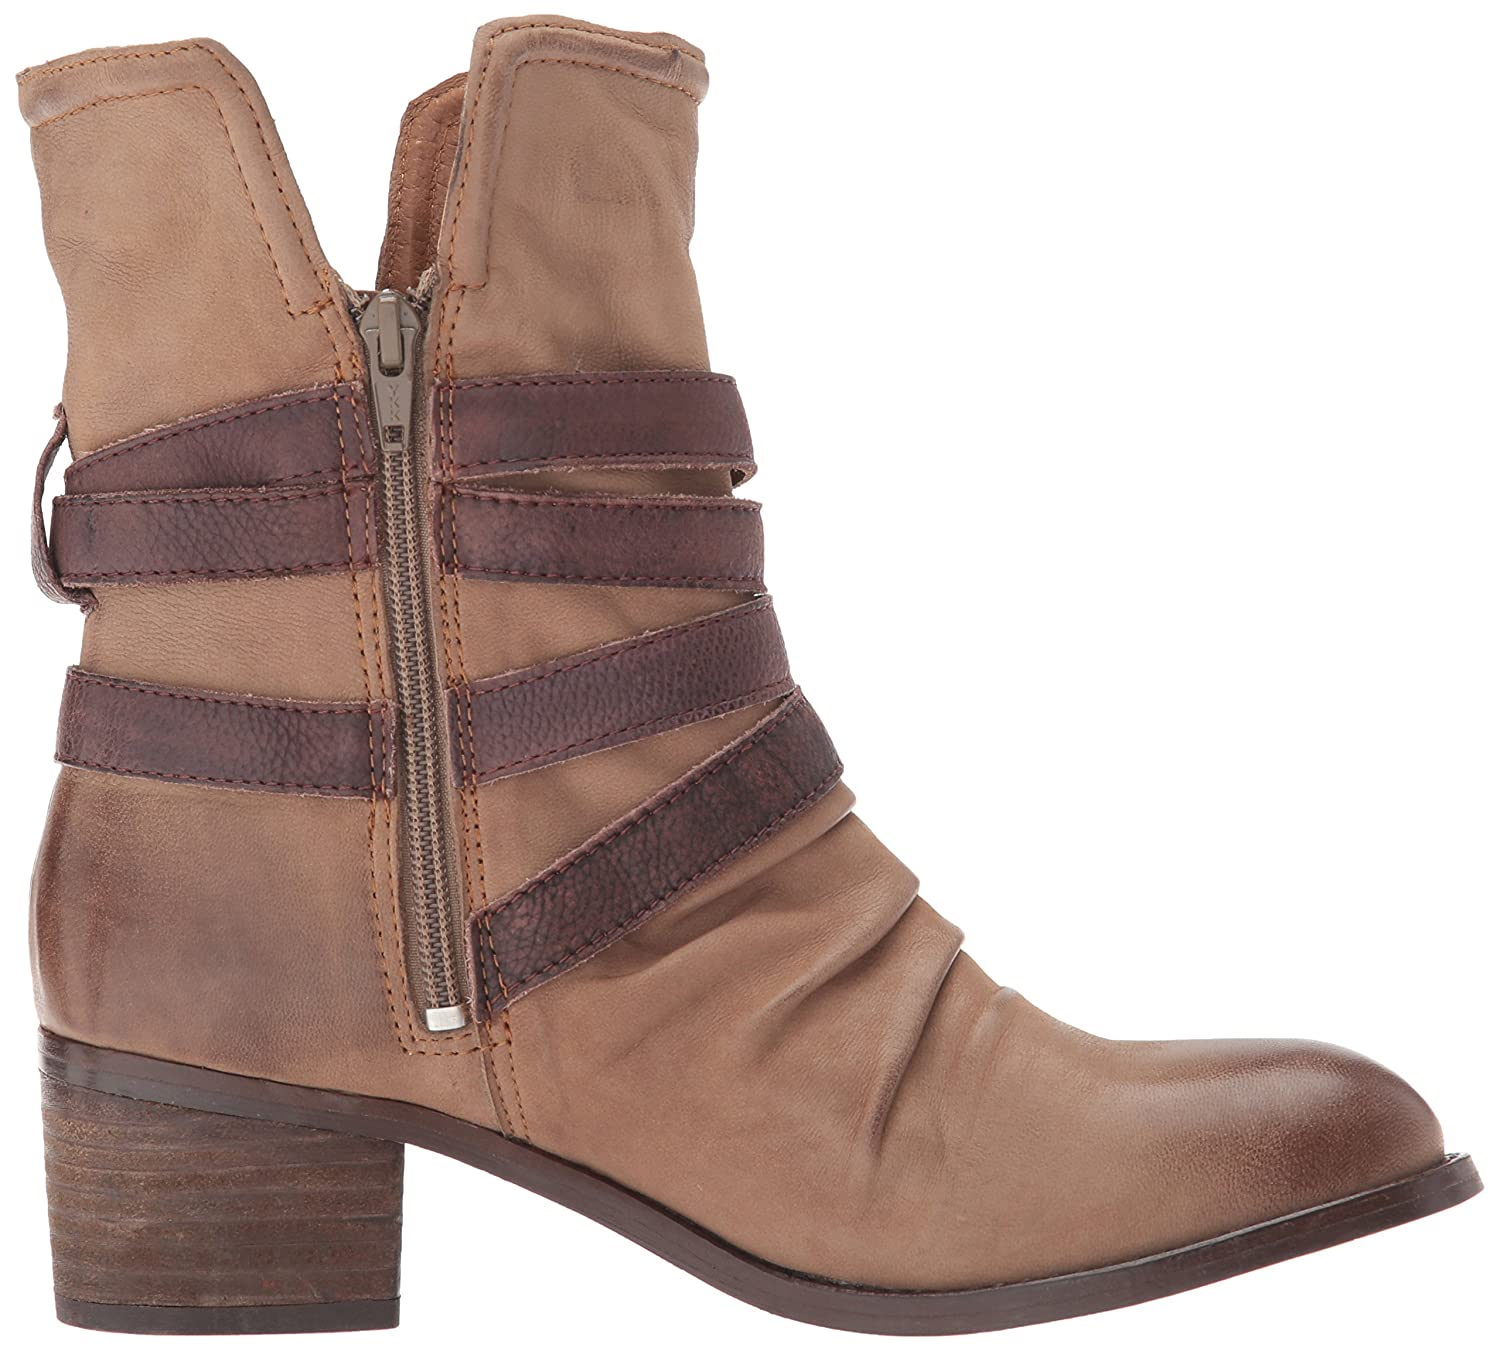 Sbicca Women's 10 Endora Engineer Boot B06XFZ79SF 10 Women's B(M) US|Taupe abbe54